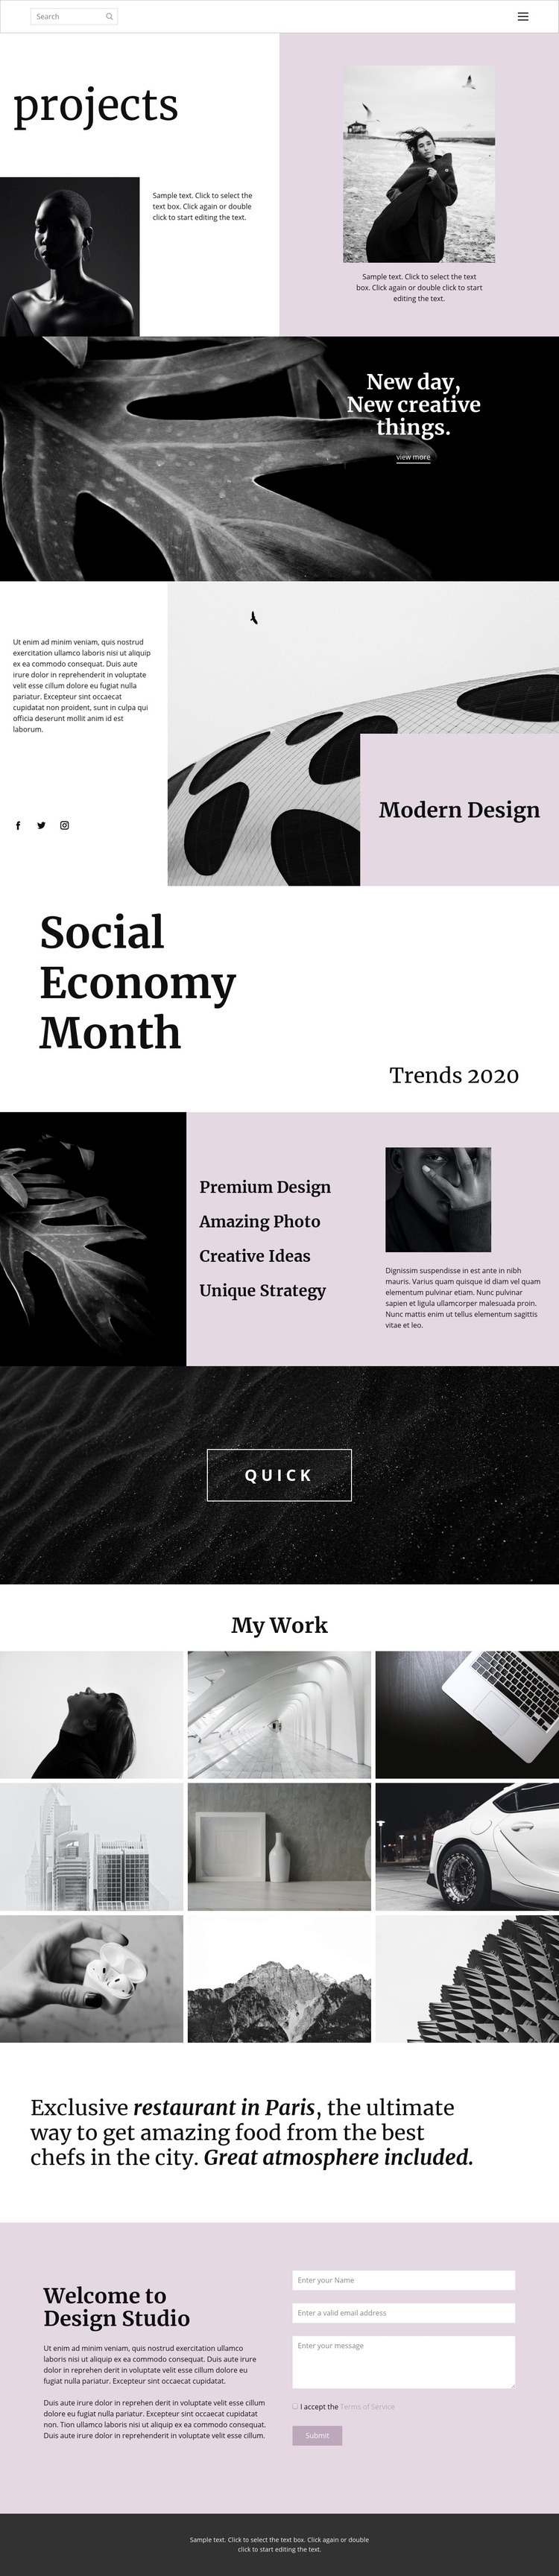 Stand out from others Web Page Design